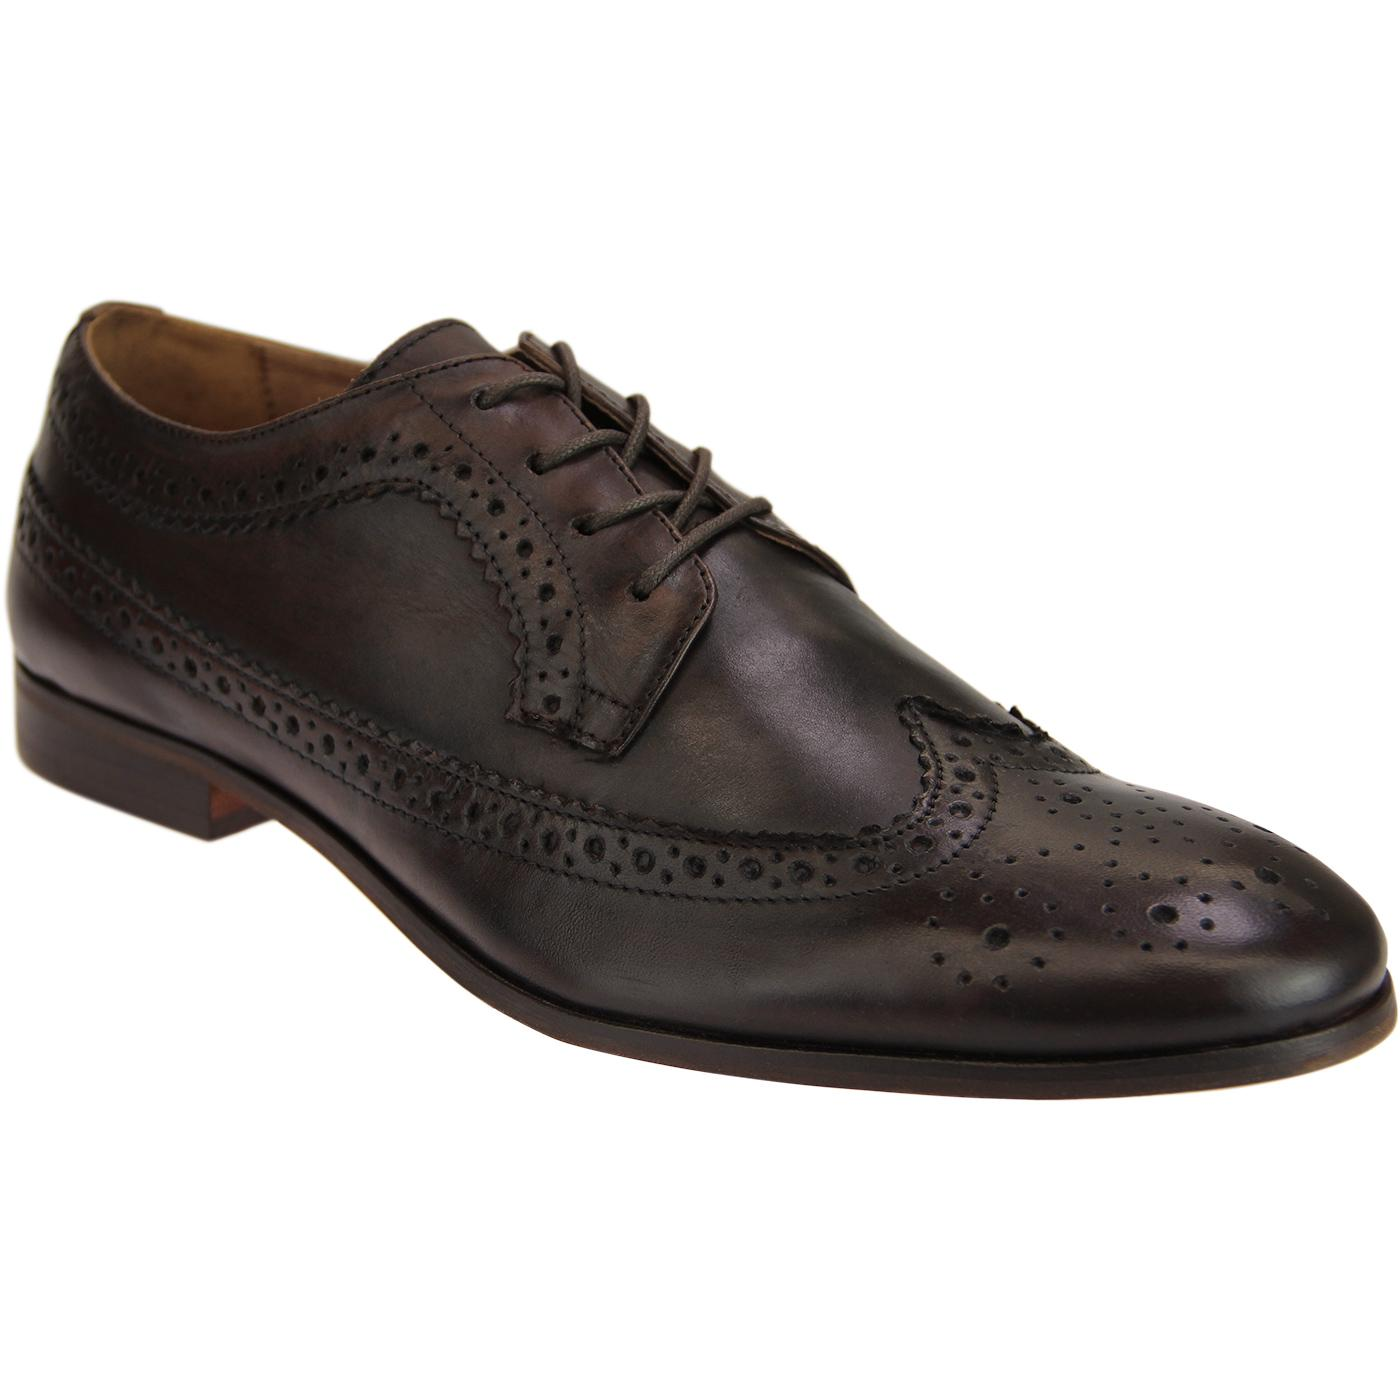 Crowthorne HUDSON 60s Mod Leather Brogues (Brown)